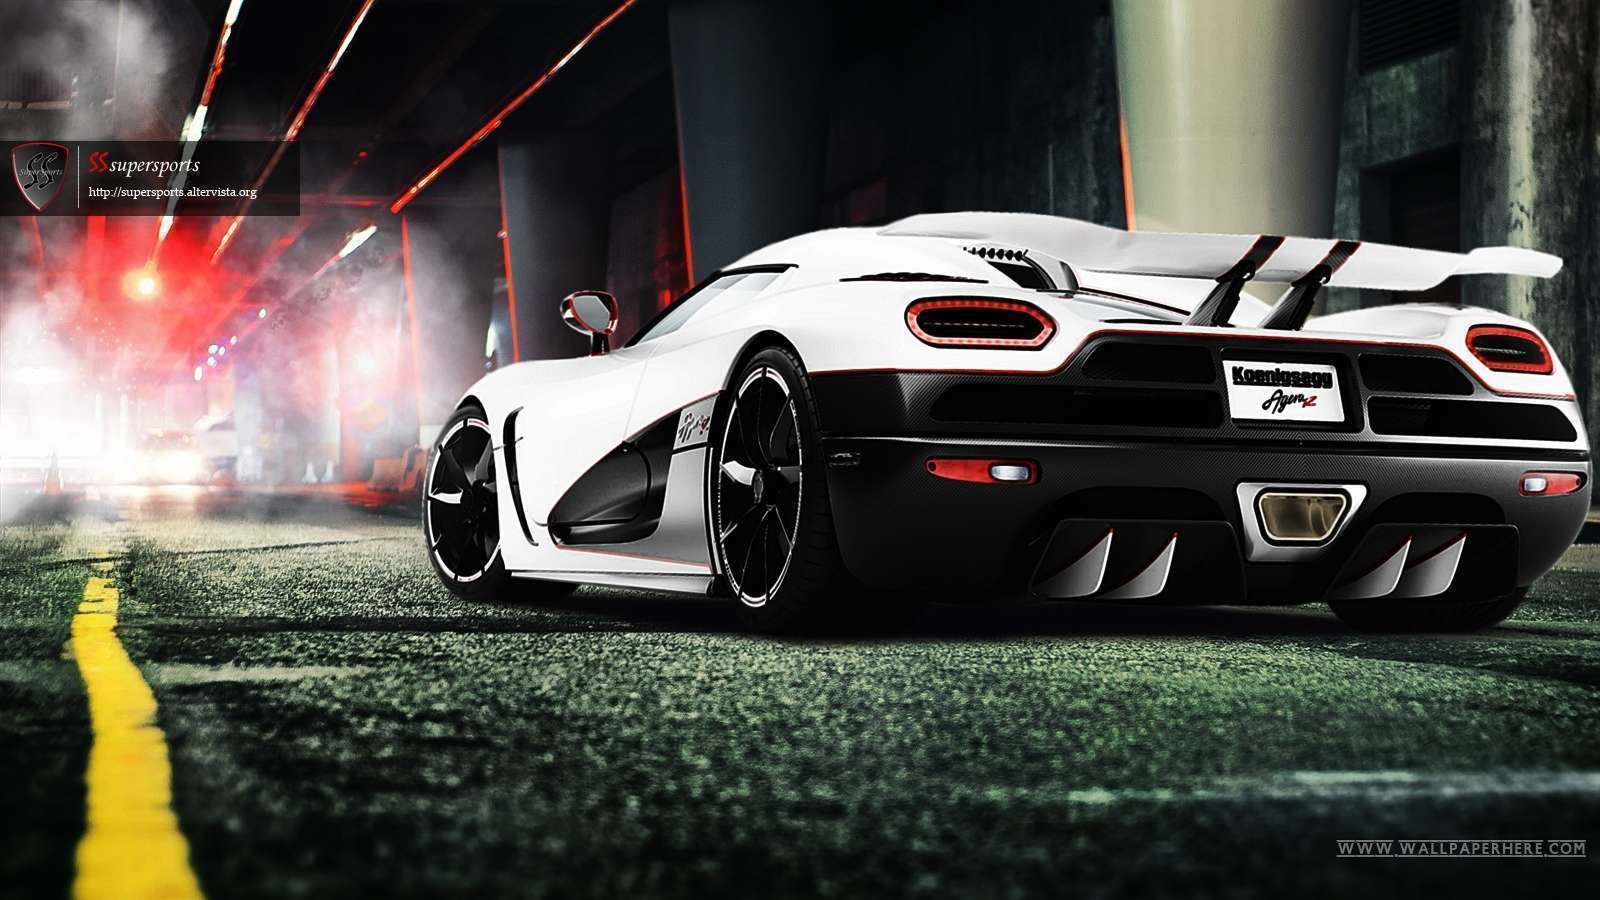 koenigsegg agera r wallpaper 1080p - wallpapersafari